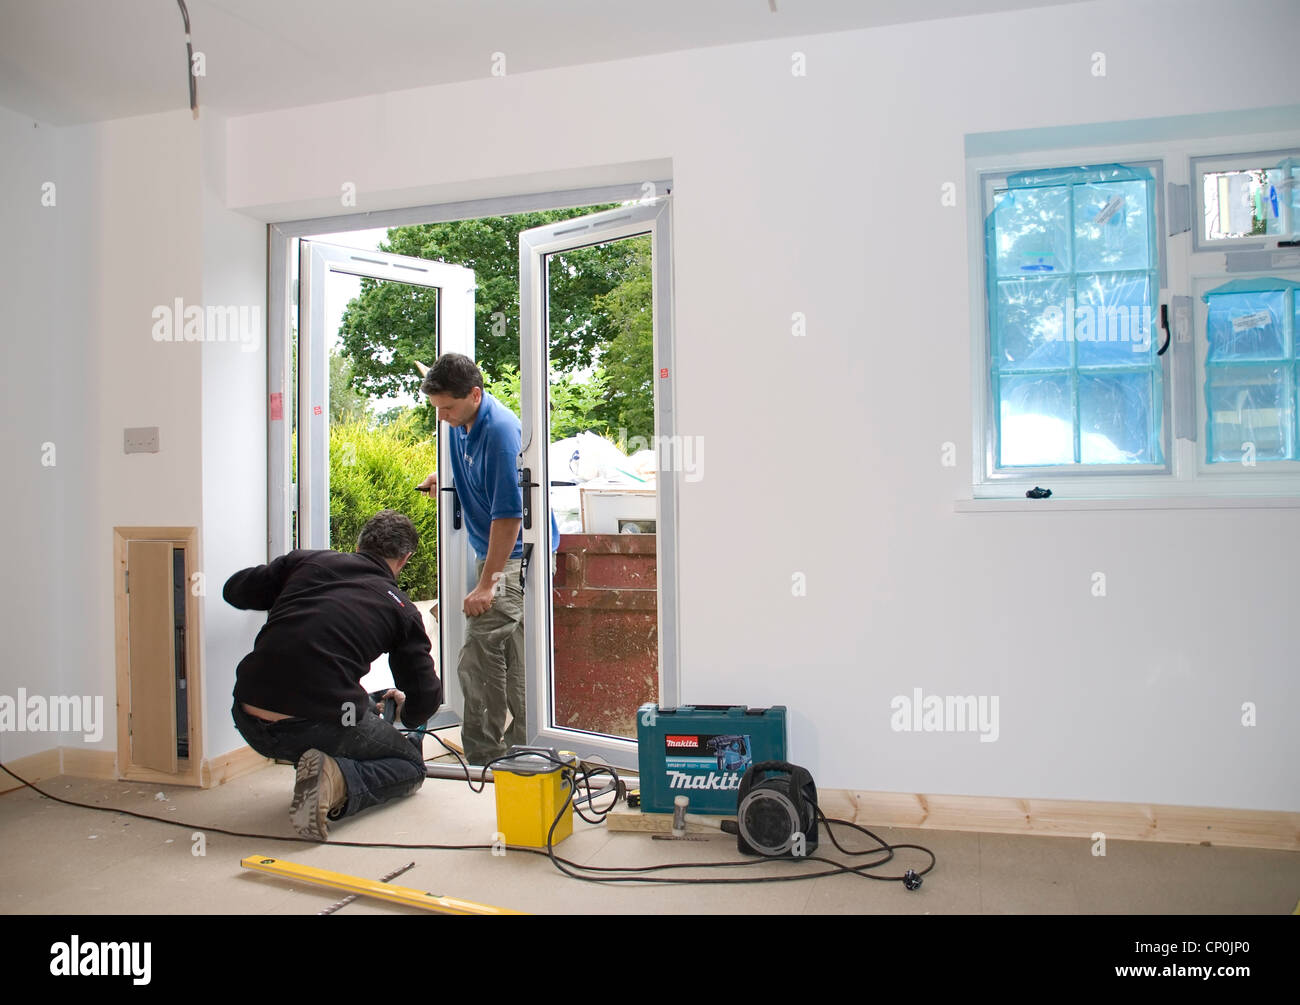 Pvc Doors Stockfotos & Pvc Doors Bilder - Alamy